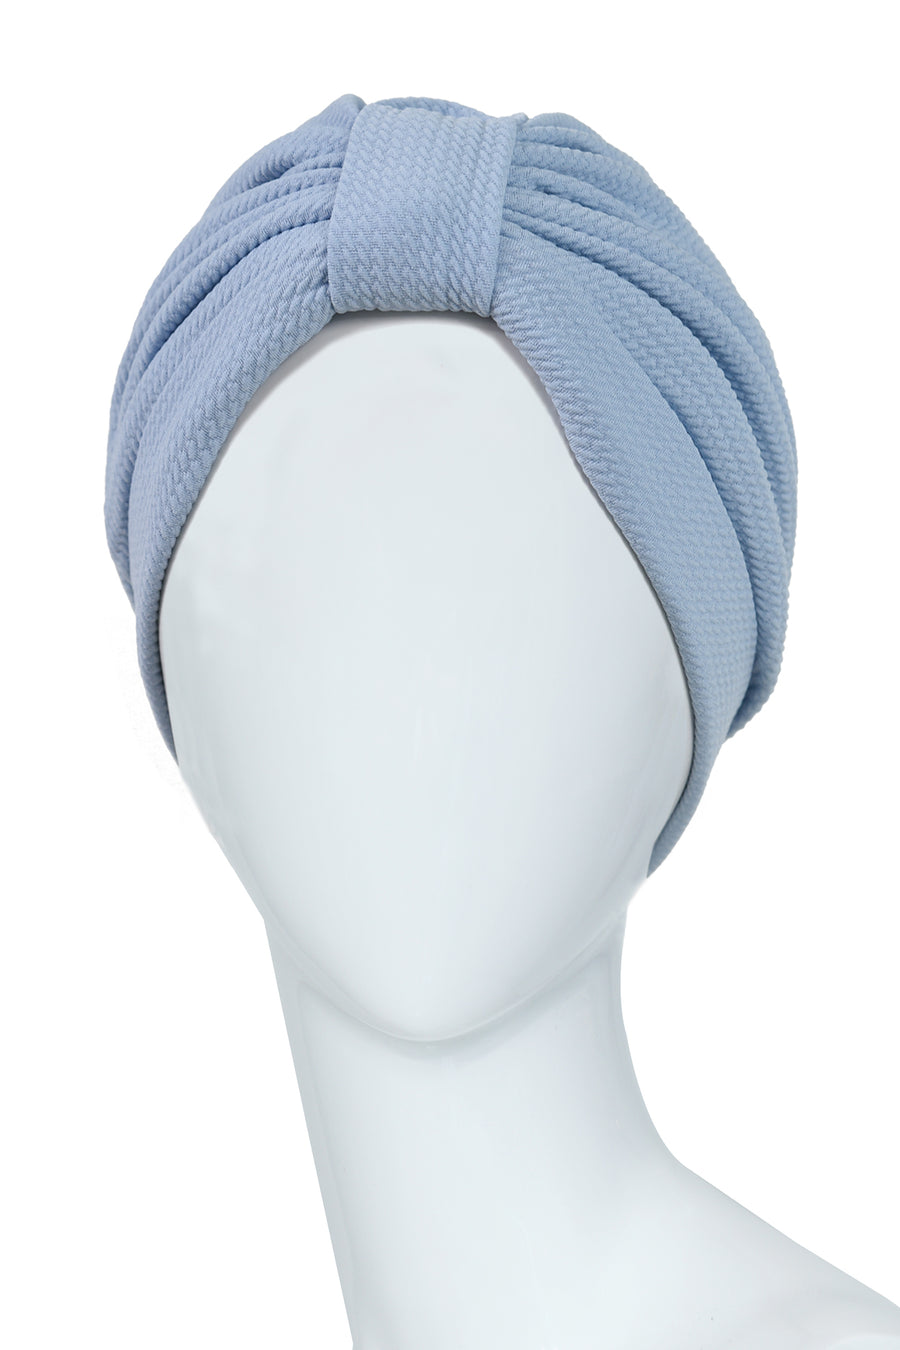 Convention - NEW TURBAN !